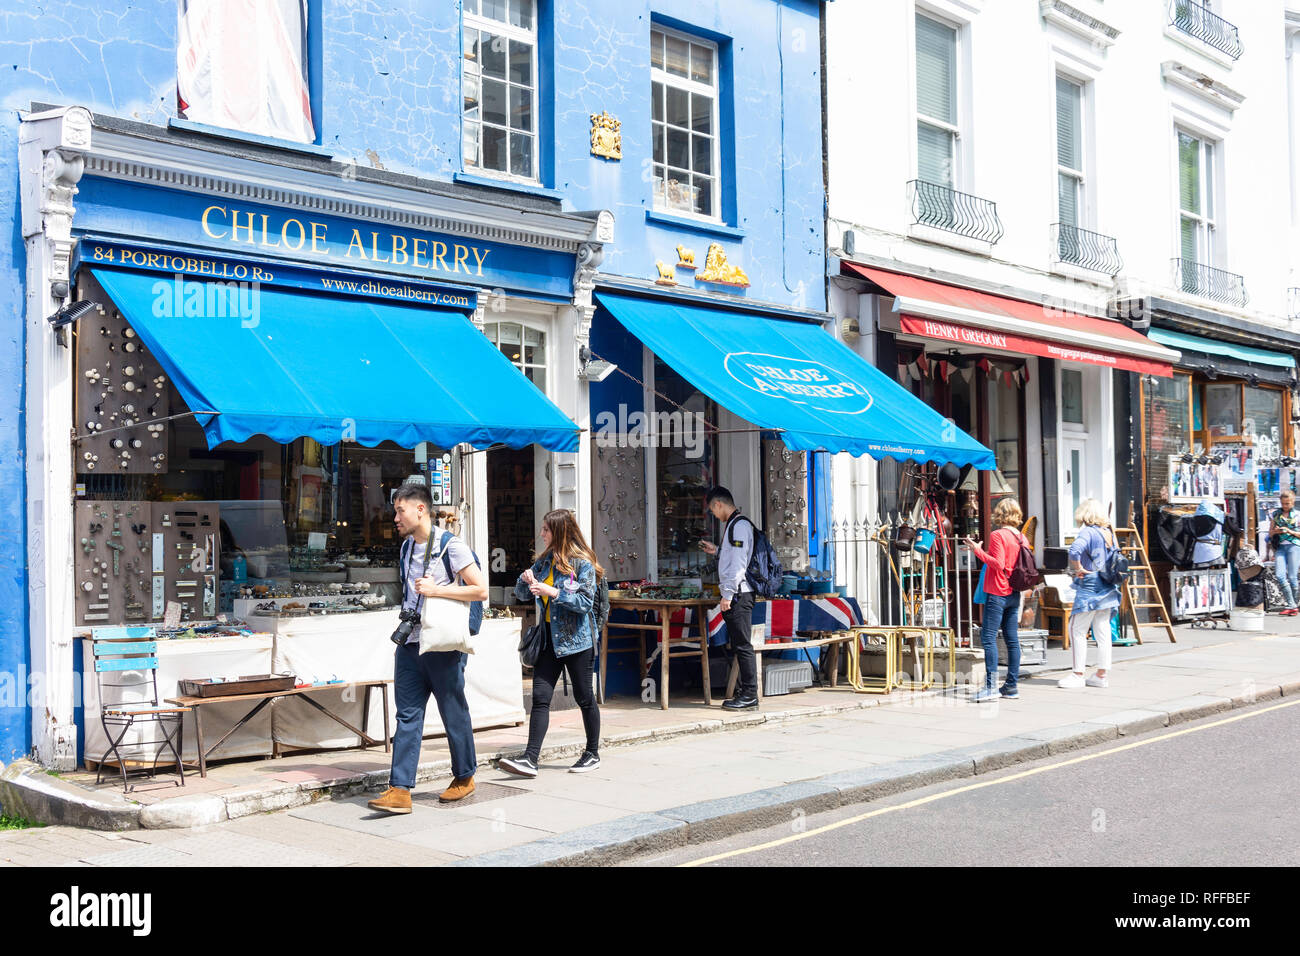 Antique shop displays, Portobello Road, Notting Hill, Royal Borough of Kensington and Chelsea, Greater London, England, United Kingdom Stock Photo